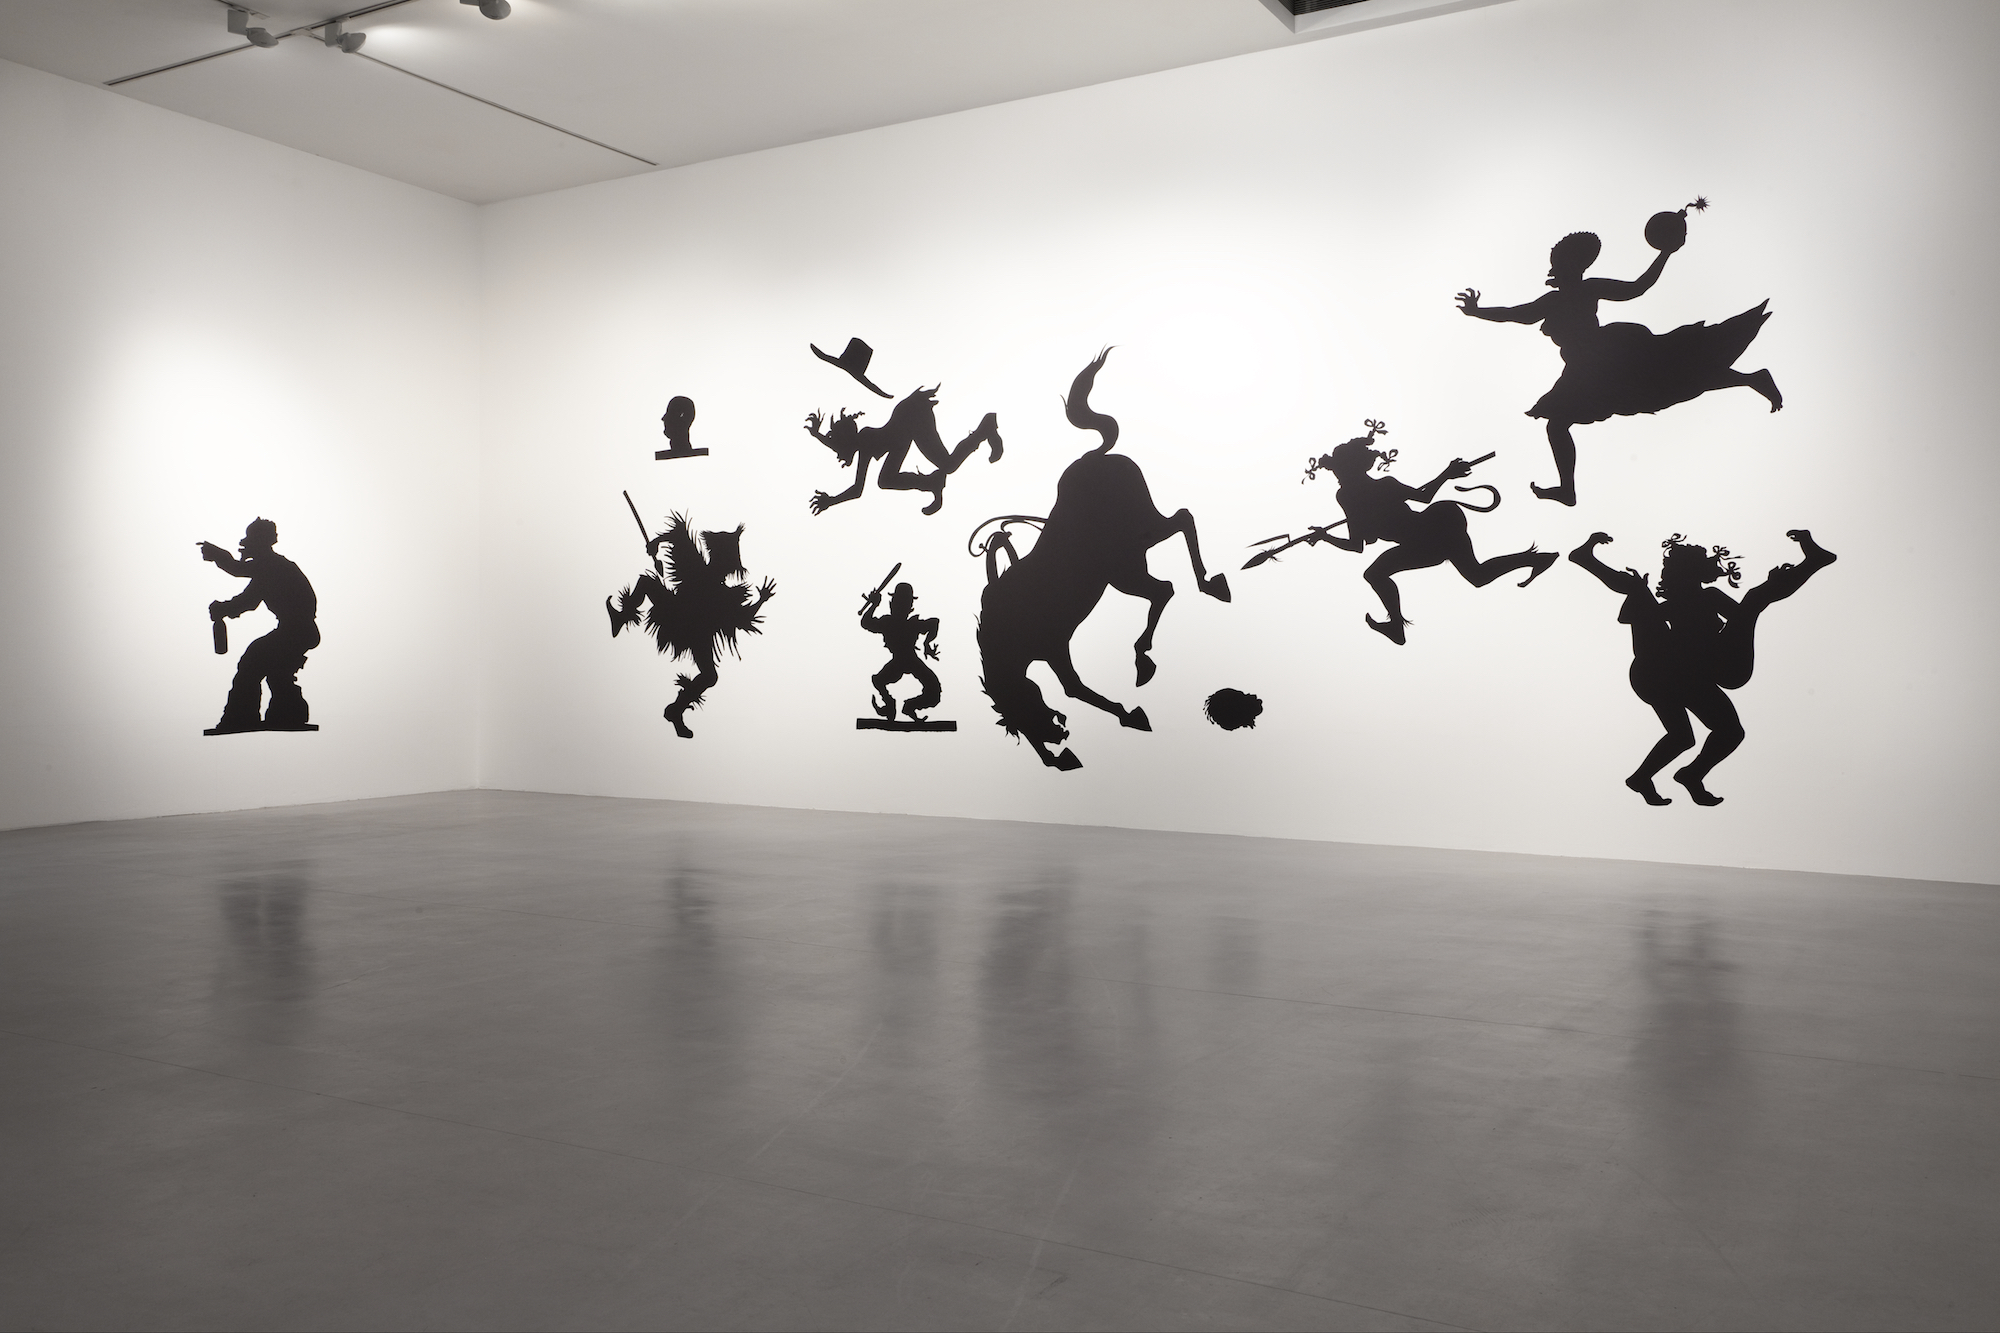 Kara Walker, Auntie Walker's Wall Sampler for Savages , 2013. Cut paper on wall, approx. 132 x 408 inches.Camden Arts Centre, London, 2013. Photo: Angus Mill Photography